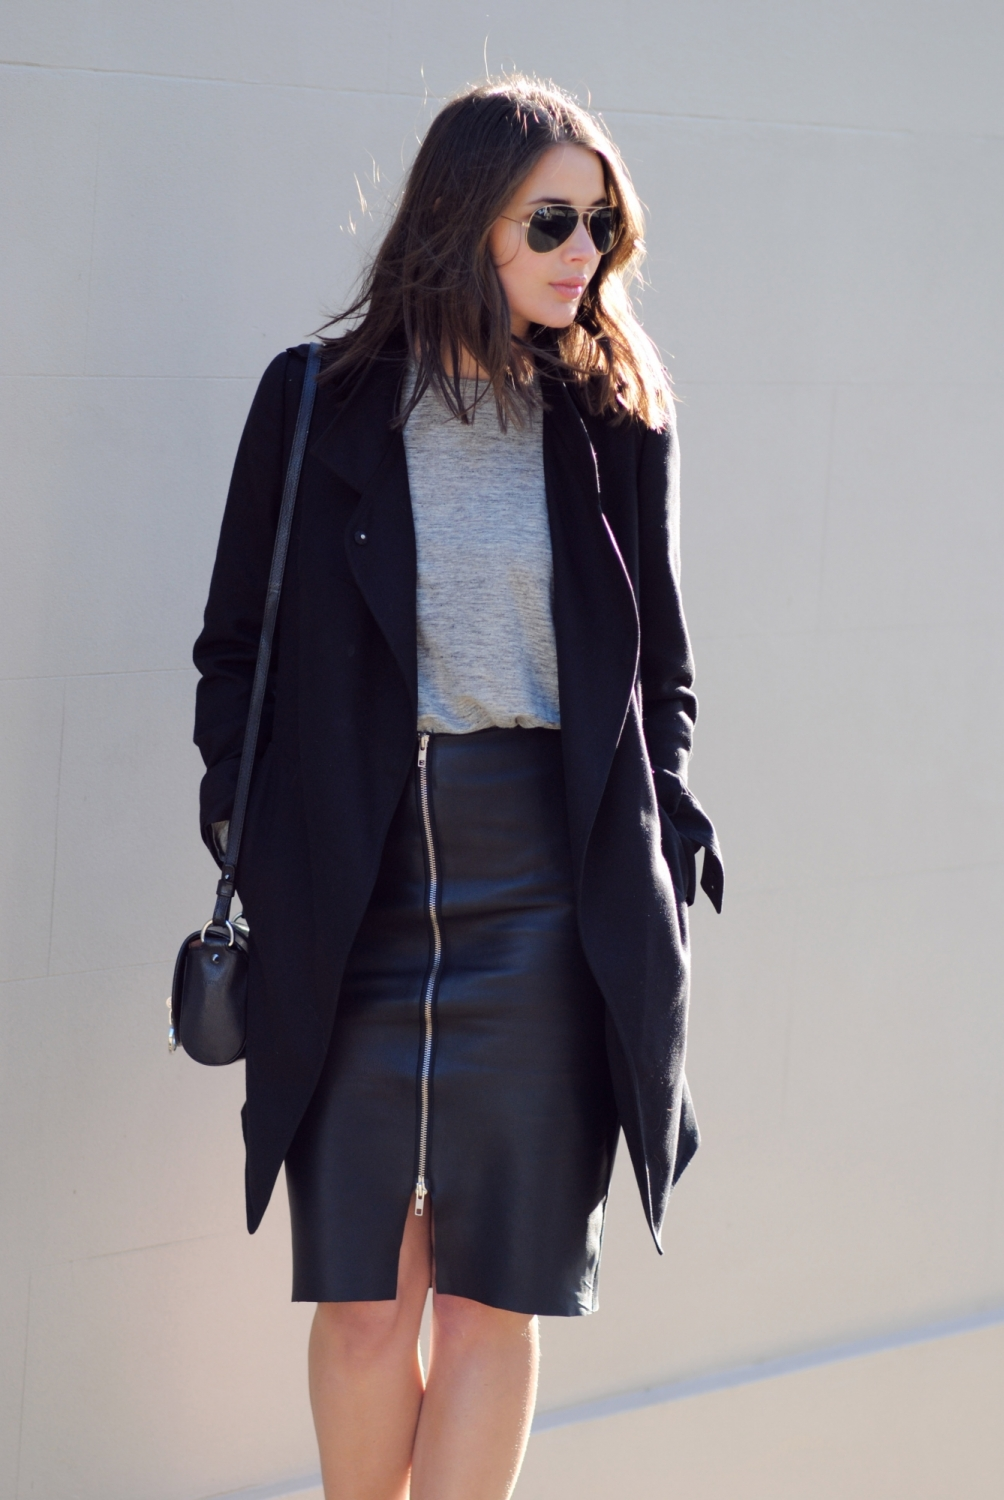 harper and harley_coat_leather skirt_winter outfit_03